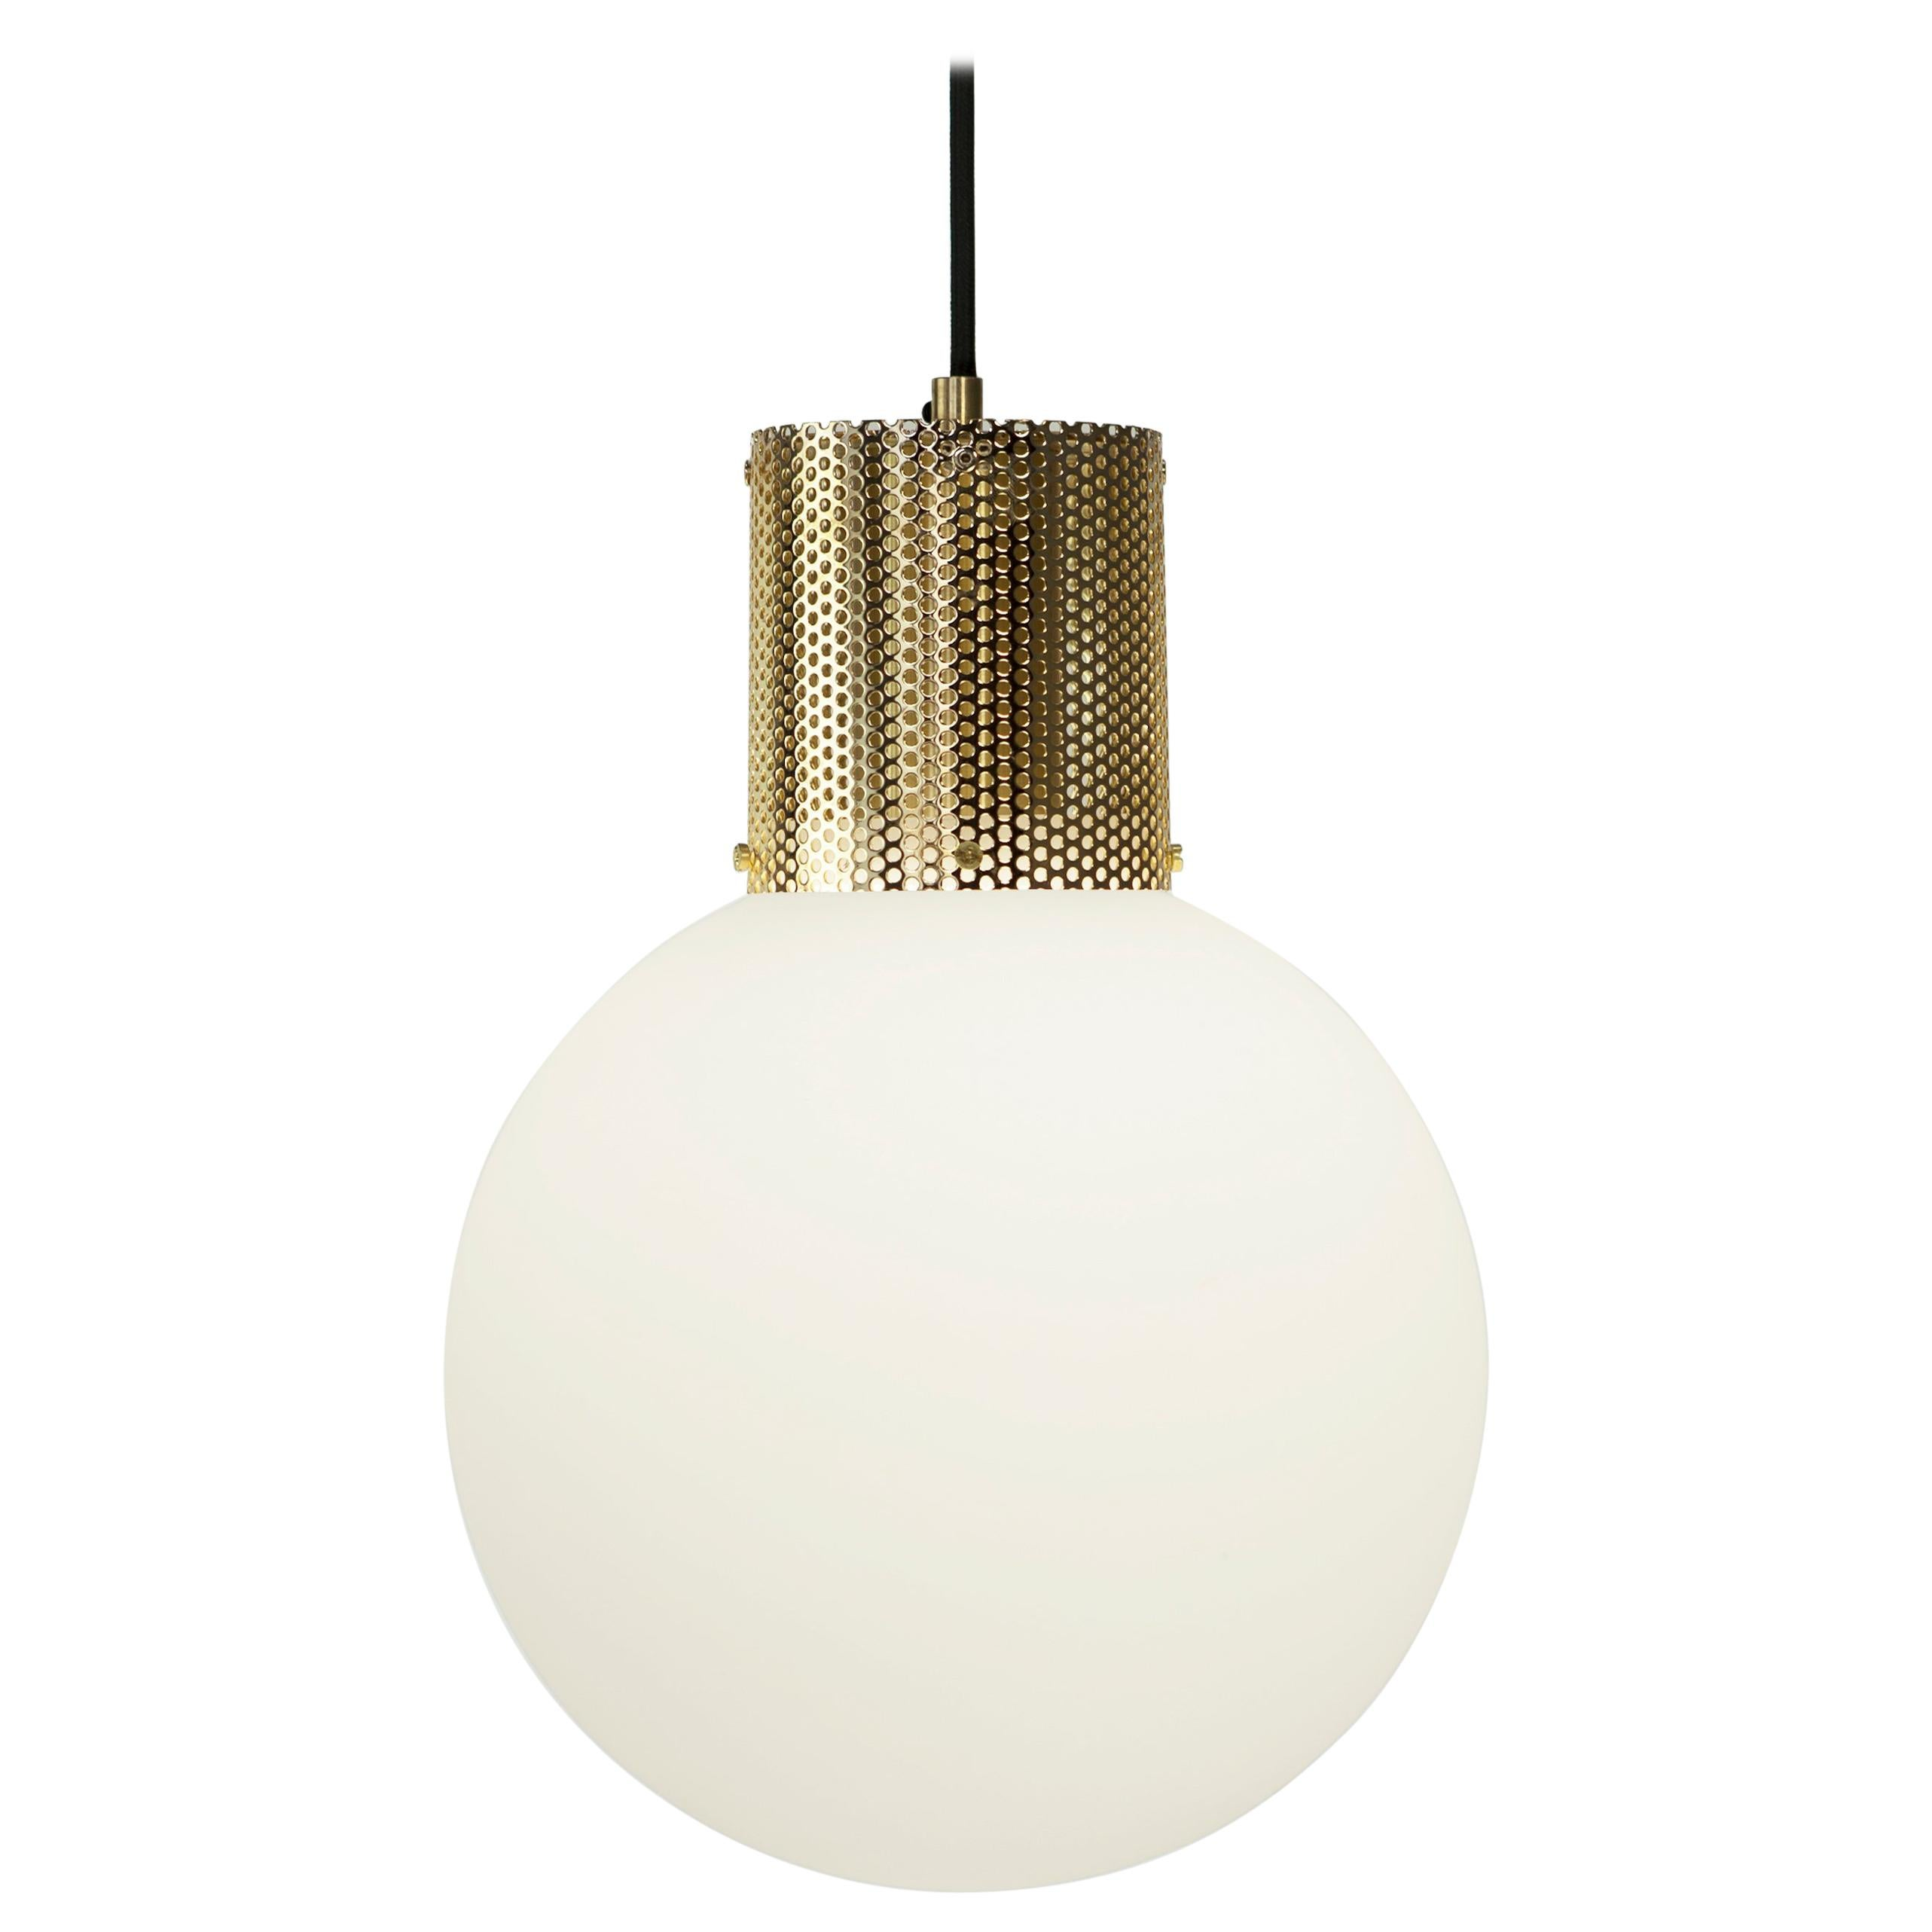 Perf pendant light small brass perforated tube glass round orb shade for sale at 1stdibs